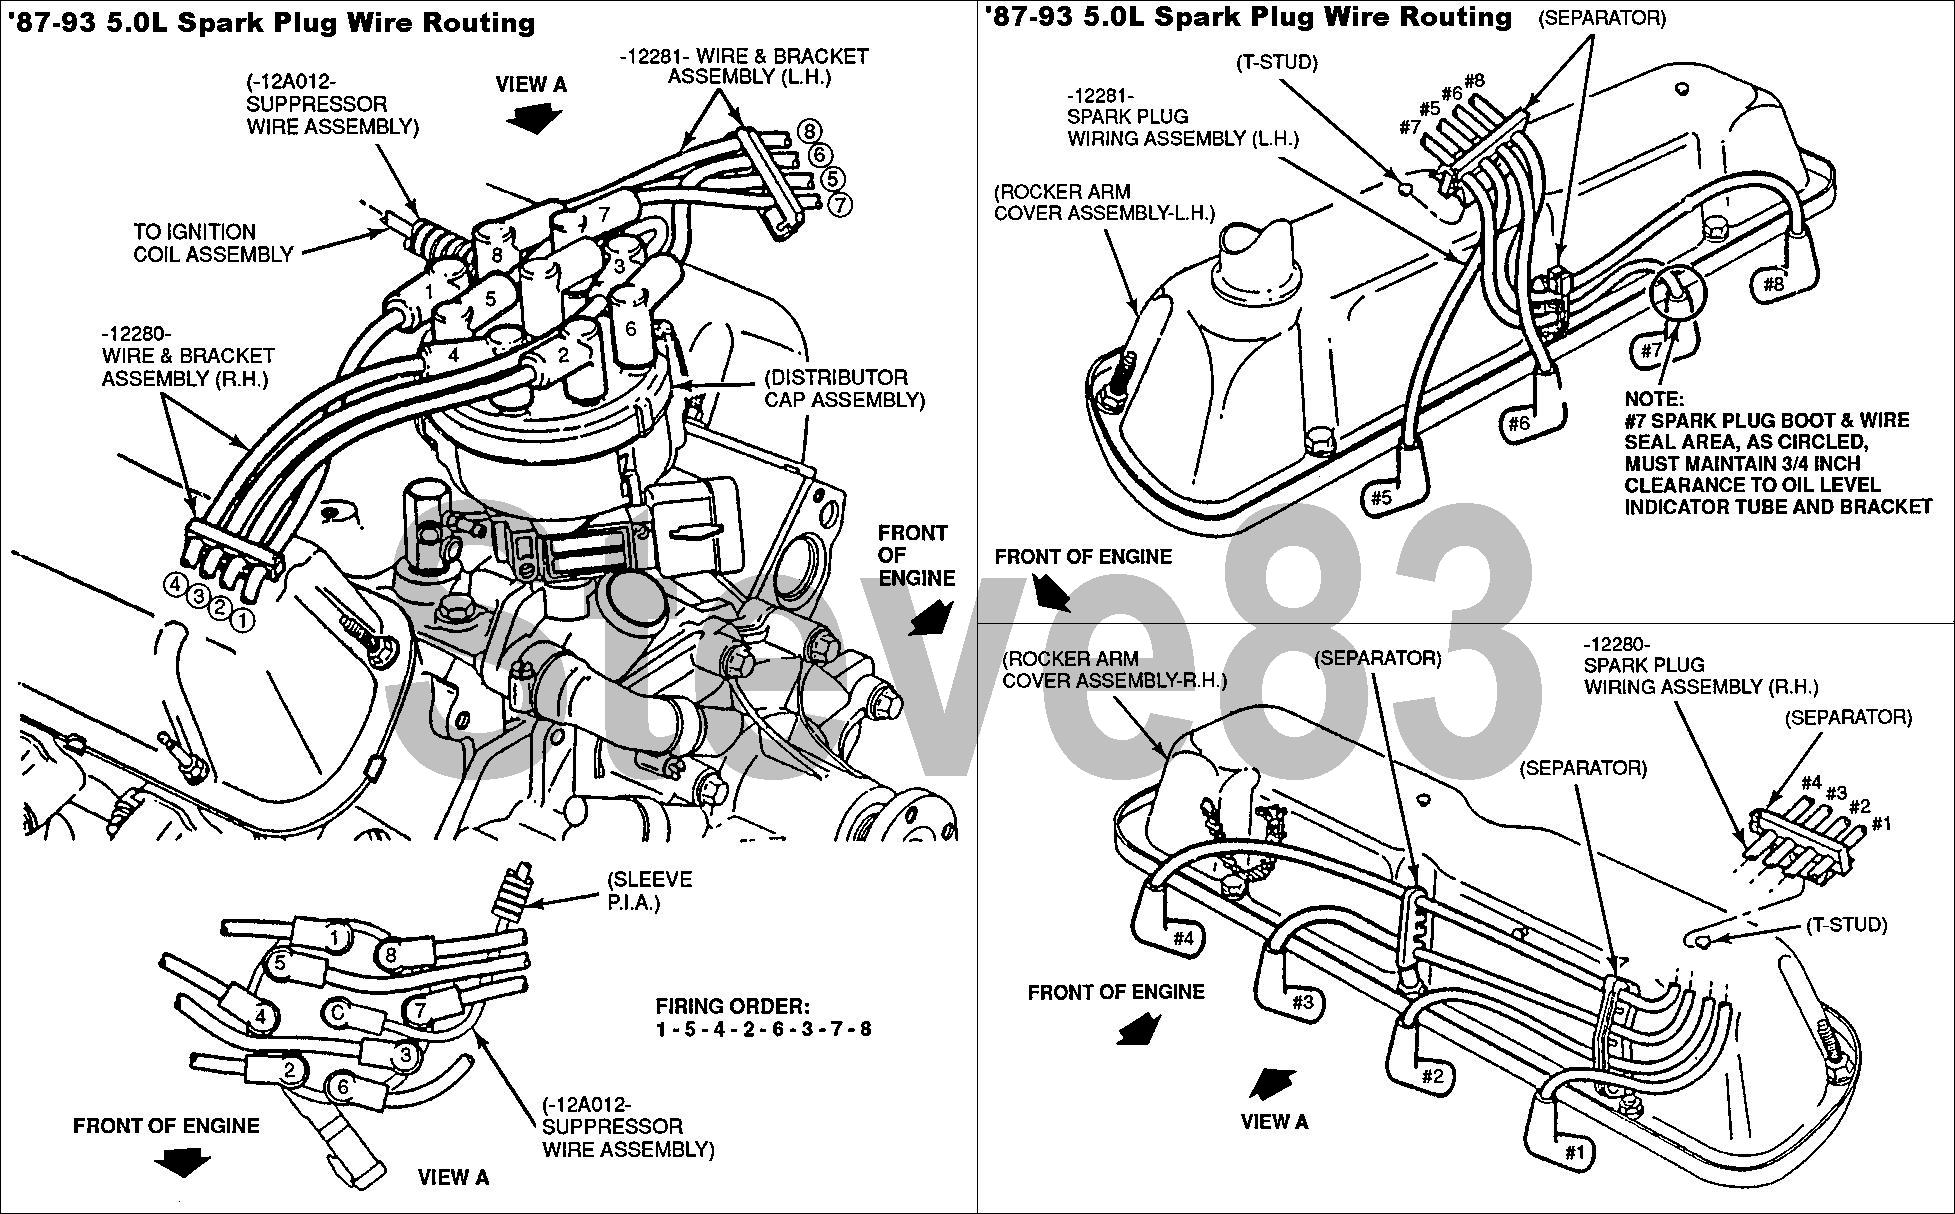 Spark Plug Wiring Diagram For E 15 5 8l